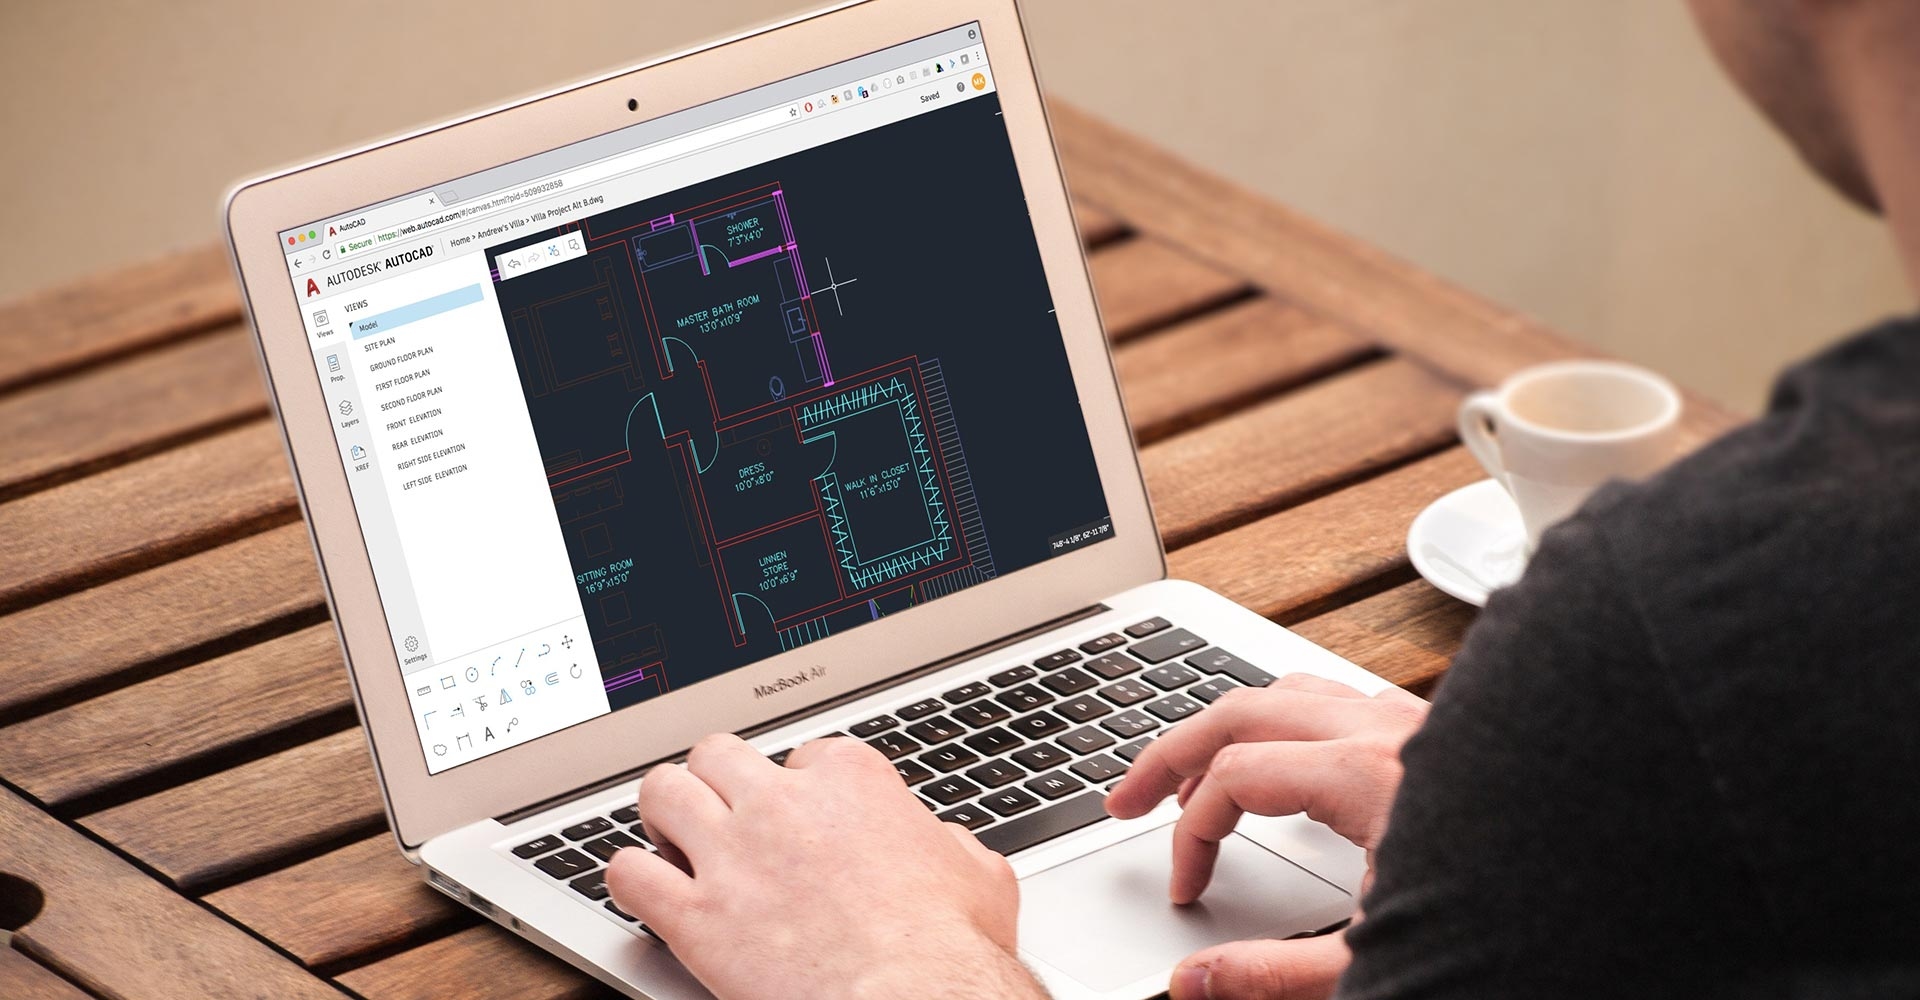 AutoCAD On-line – web editor app